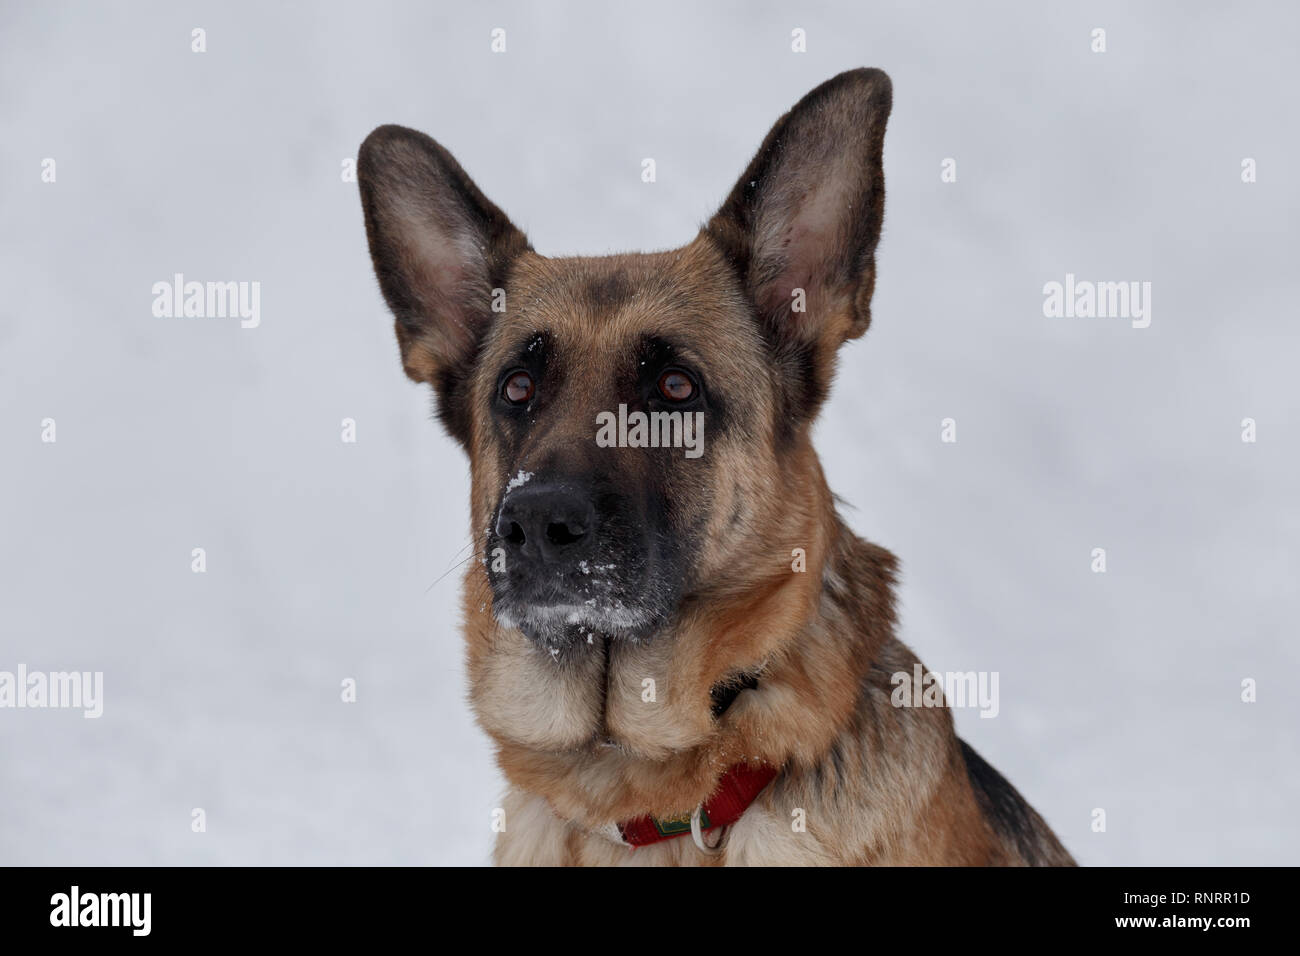 Cute german shepherd with black mask is looking at the camera. Pet animals. Purebred dog. - Stock Image